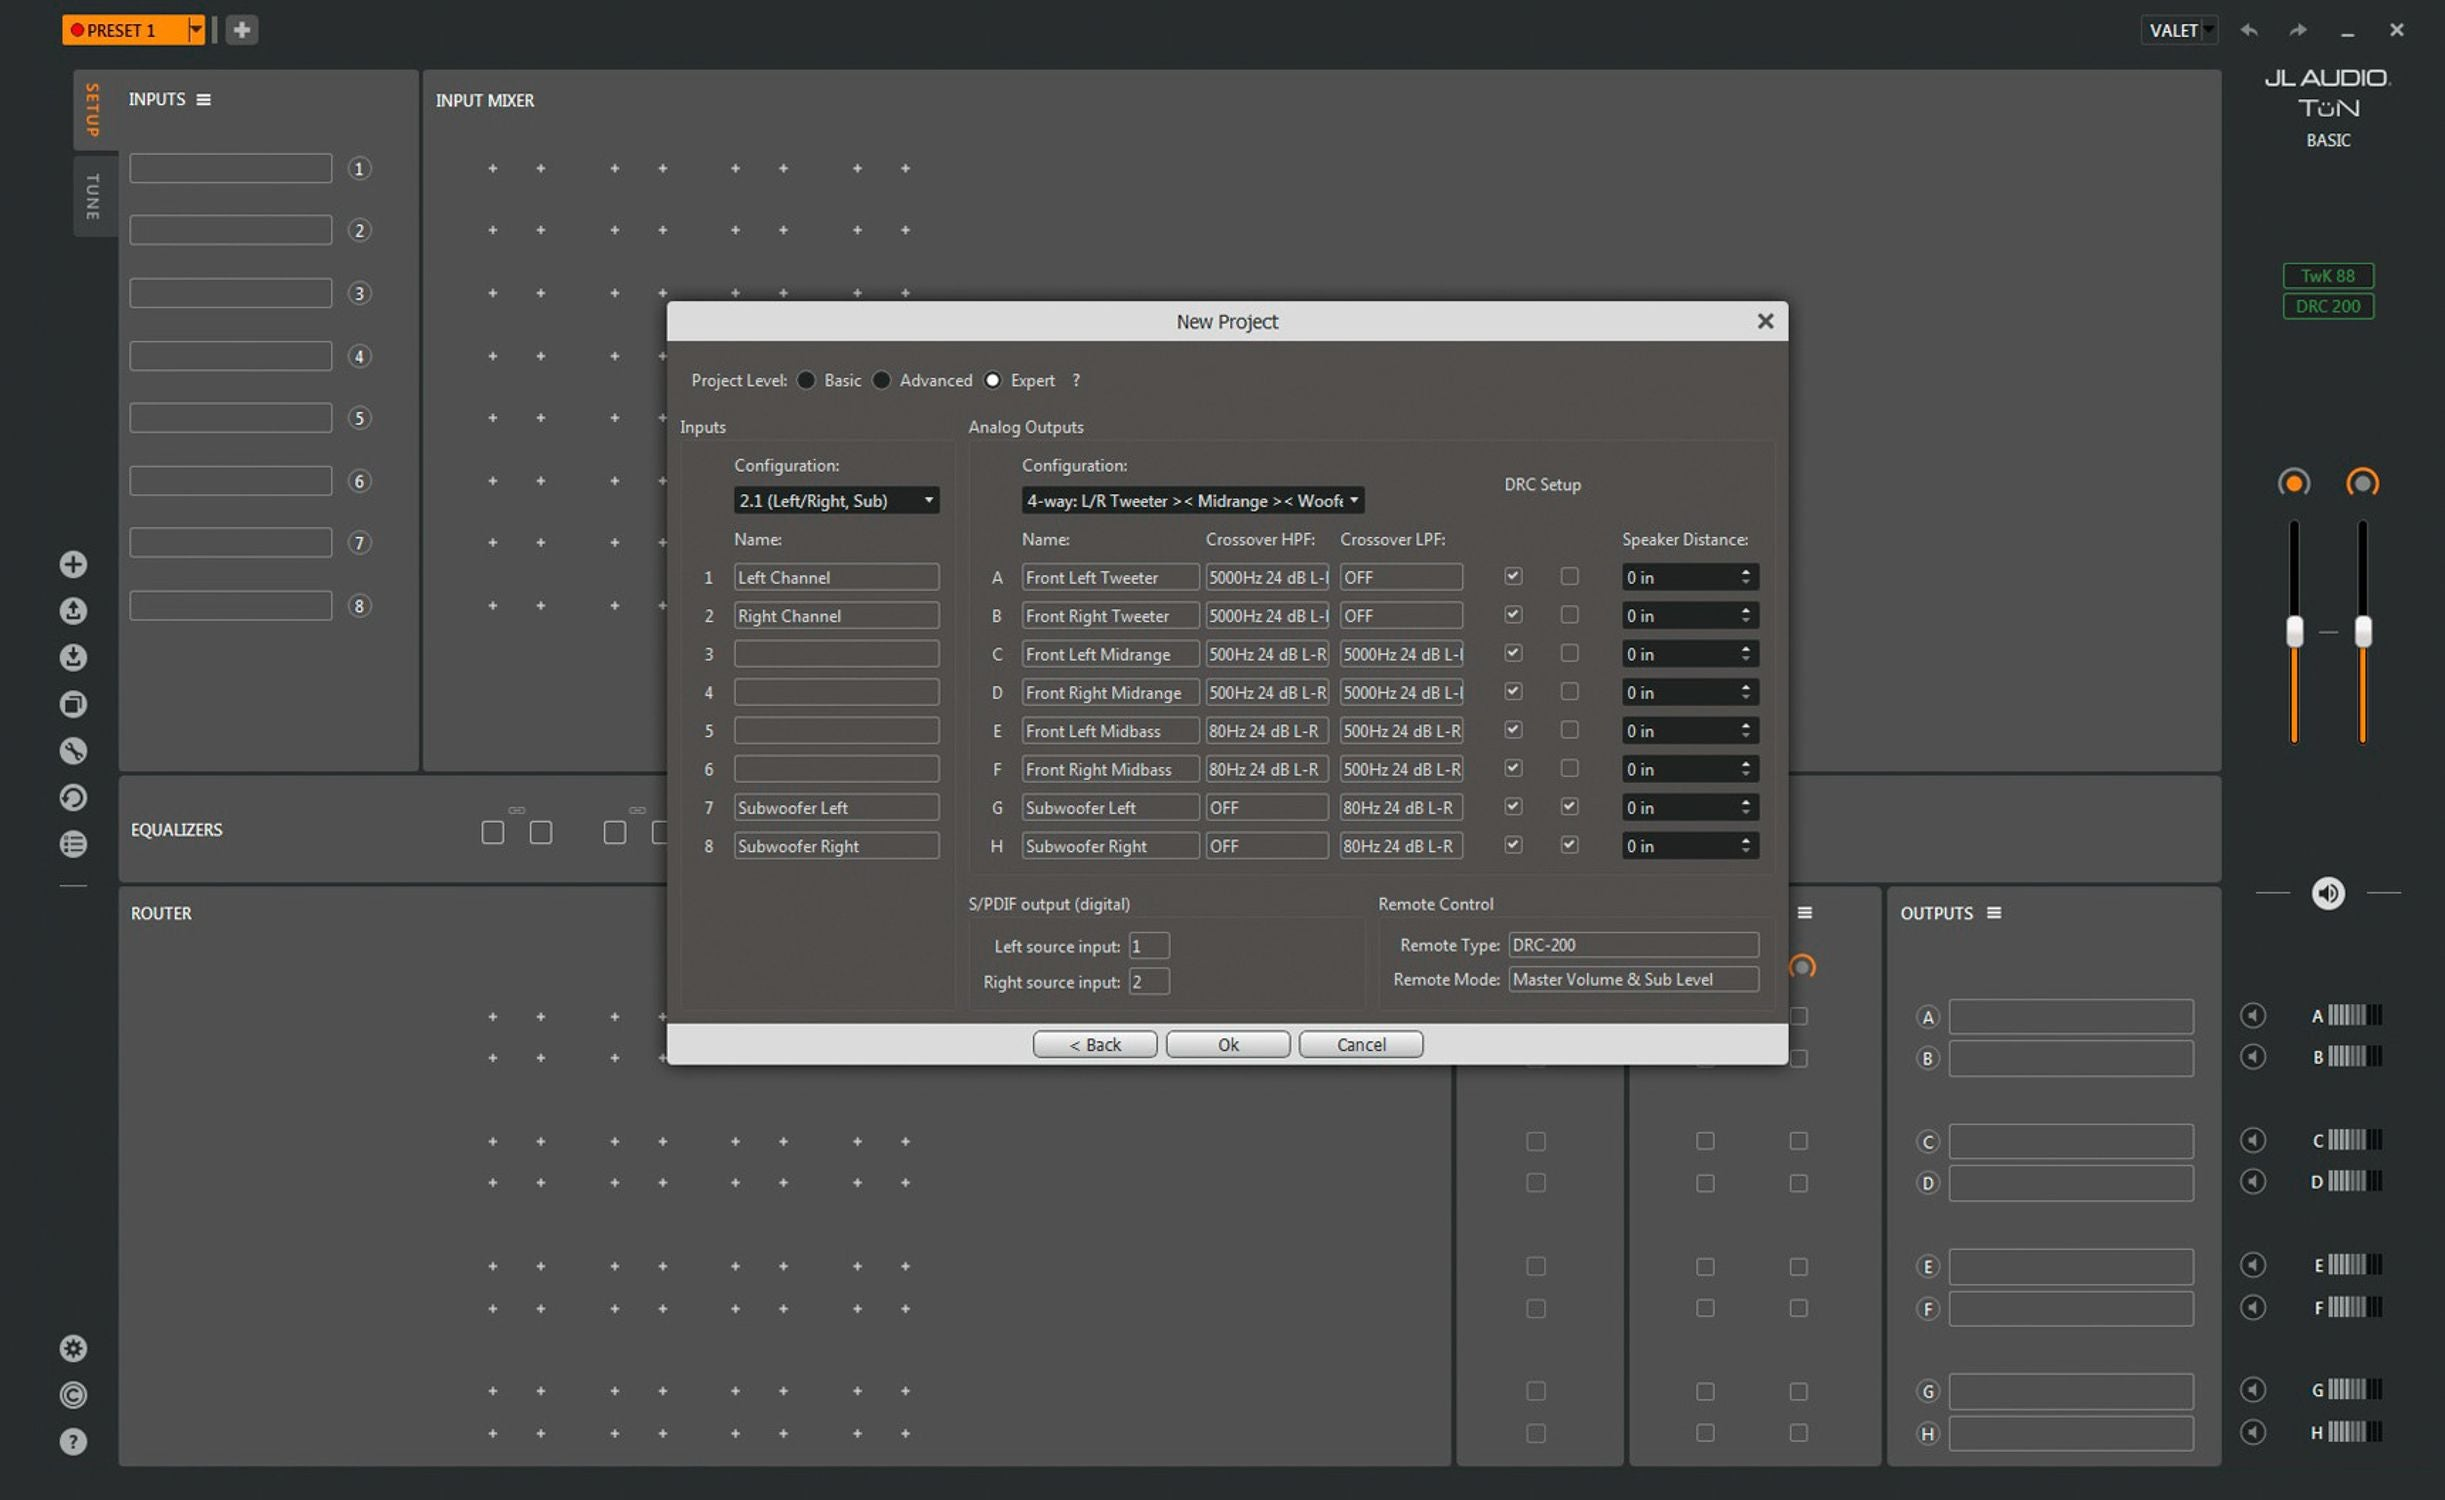 Screen Shot of the New Project Window in TüN Software